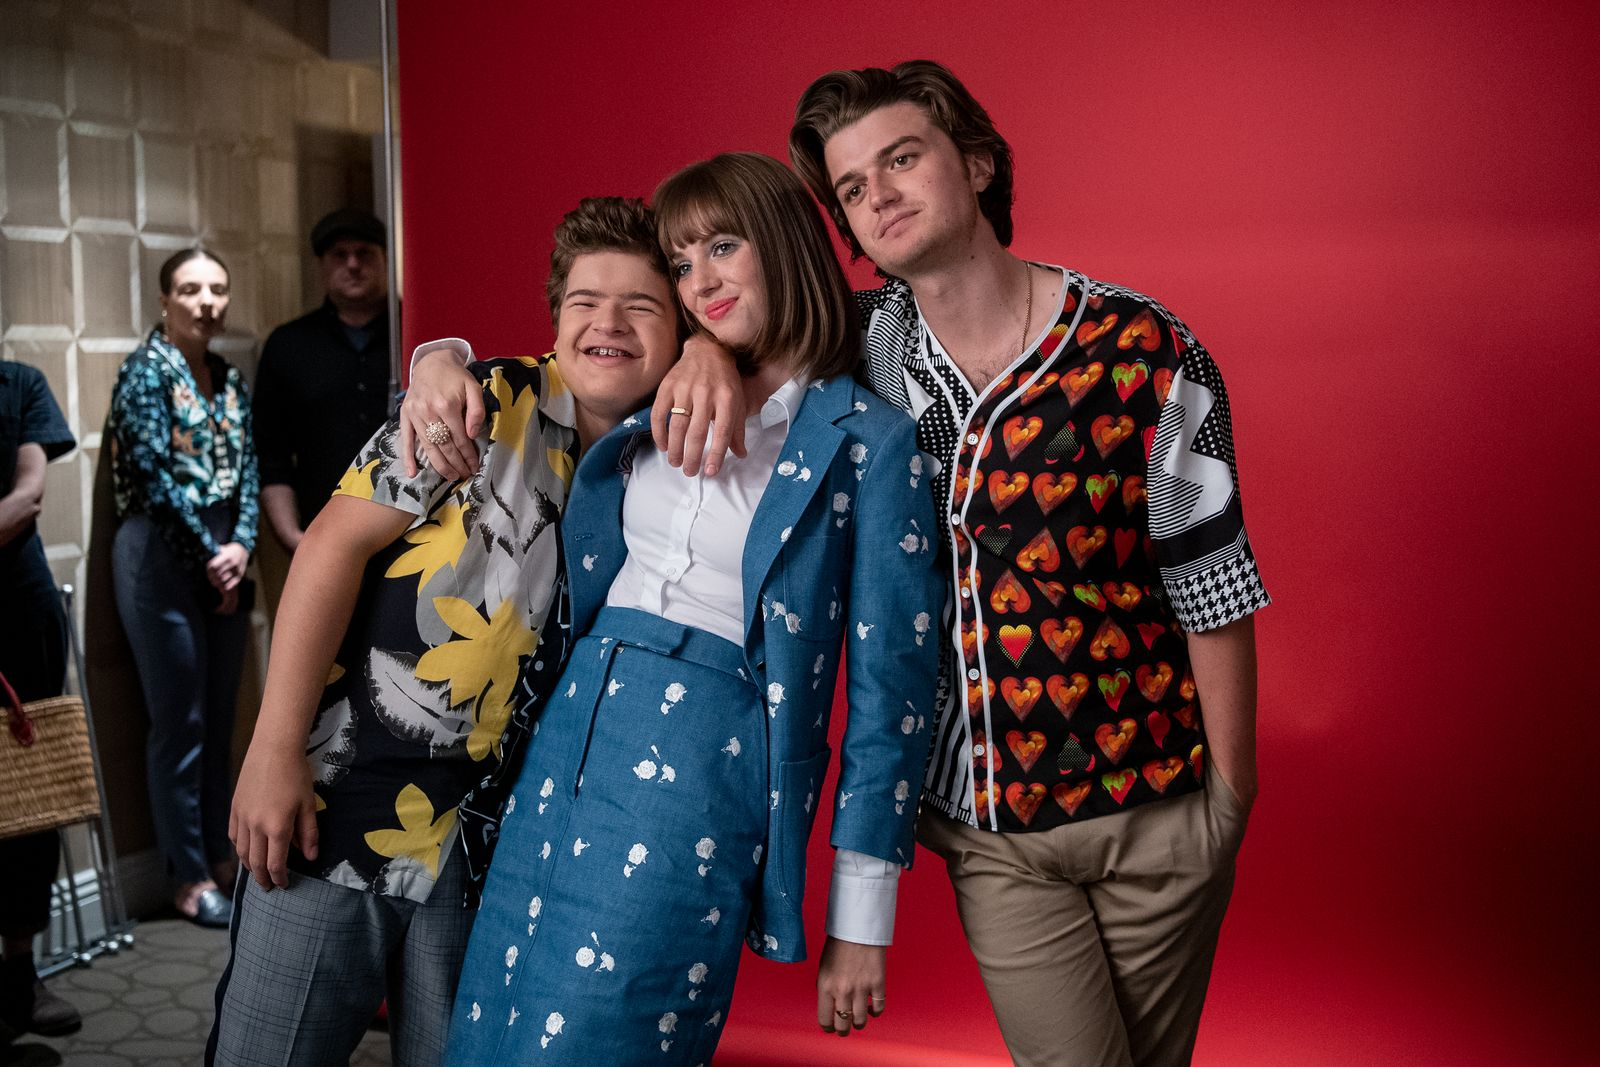 Gaten Matarazzo, Joe Keery, Maya Hawke at the Stranger Things Season 3 Press Day/Photo:Getty Images